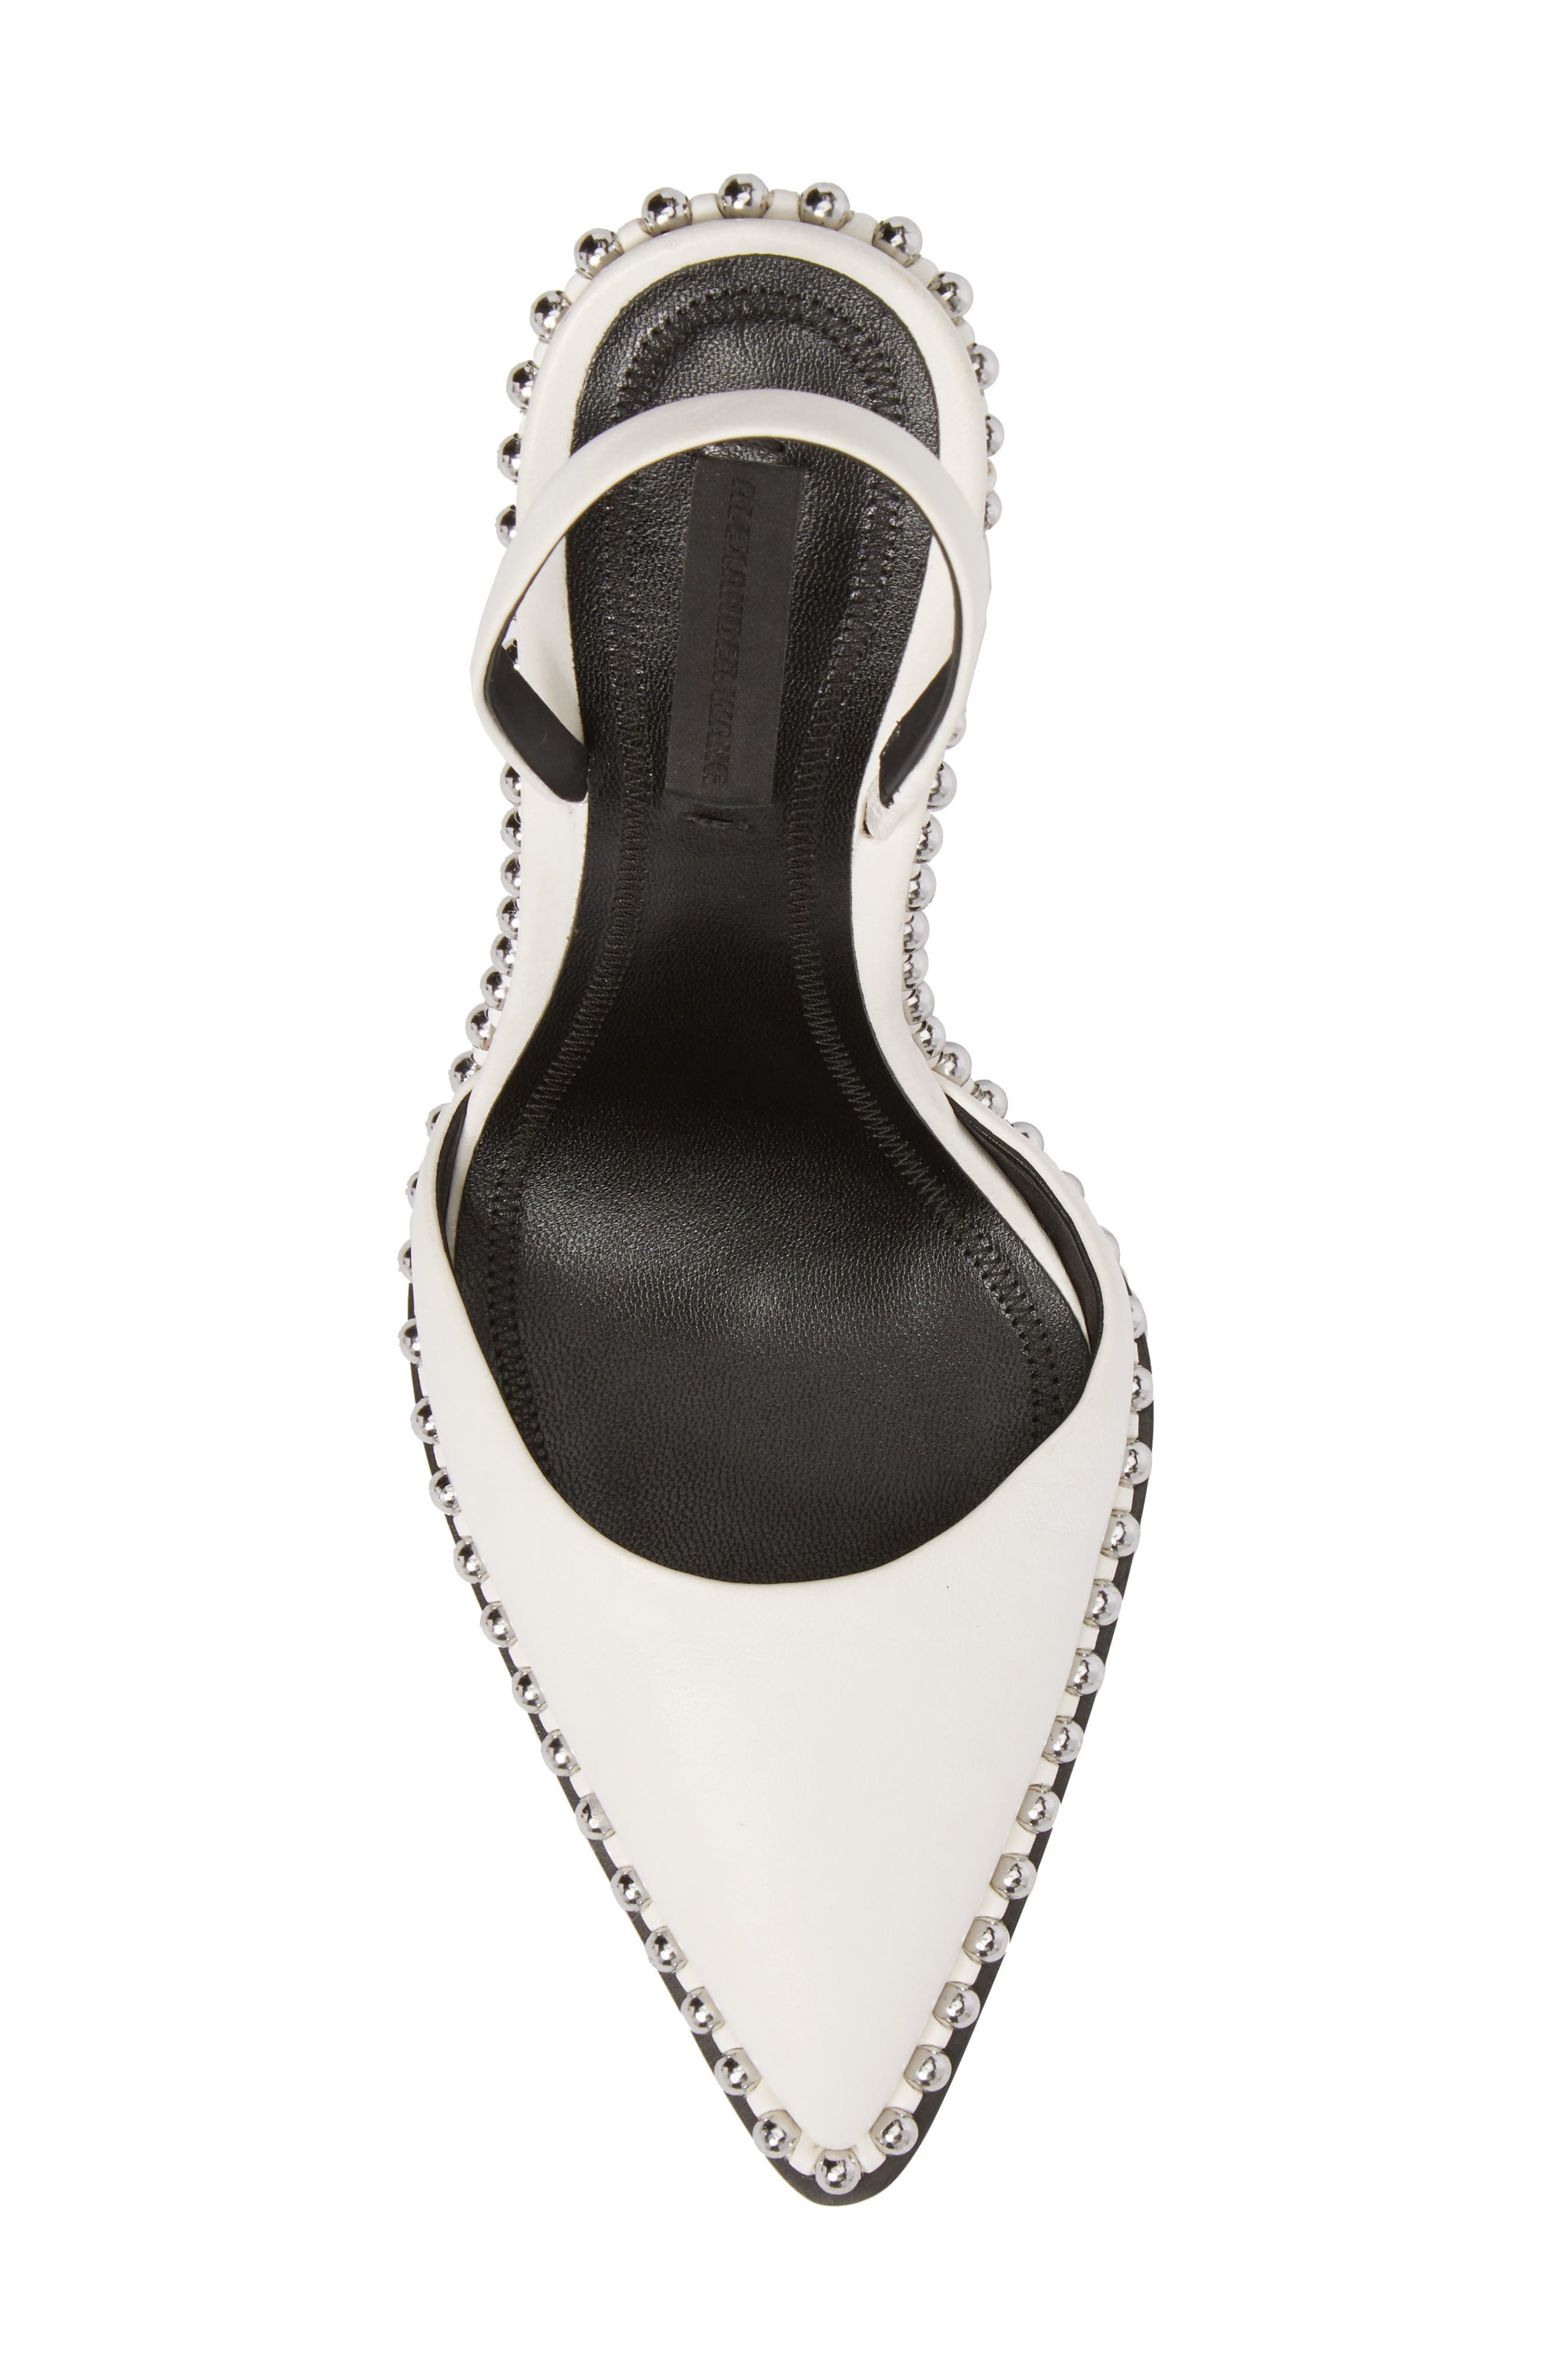 ALEXANDER WANG, Rina Beaded Pump, Alternate thumbnail 5, color, WHITE LEATHER